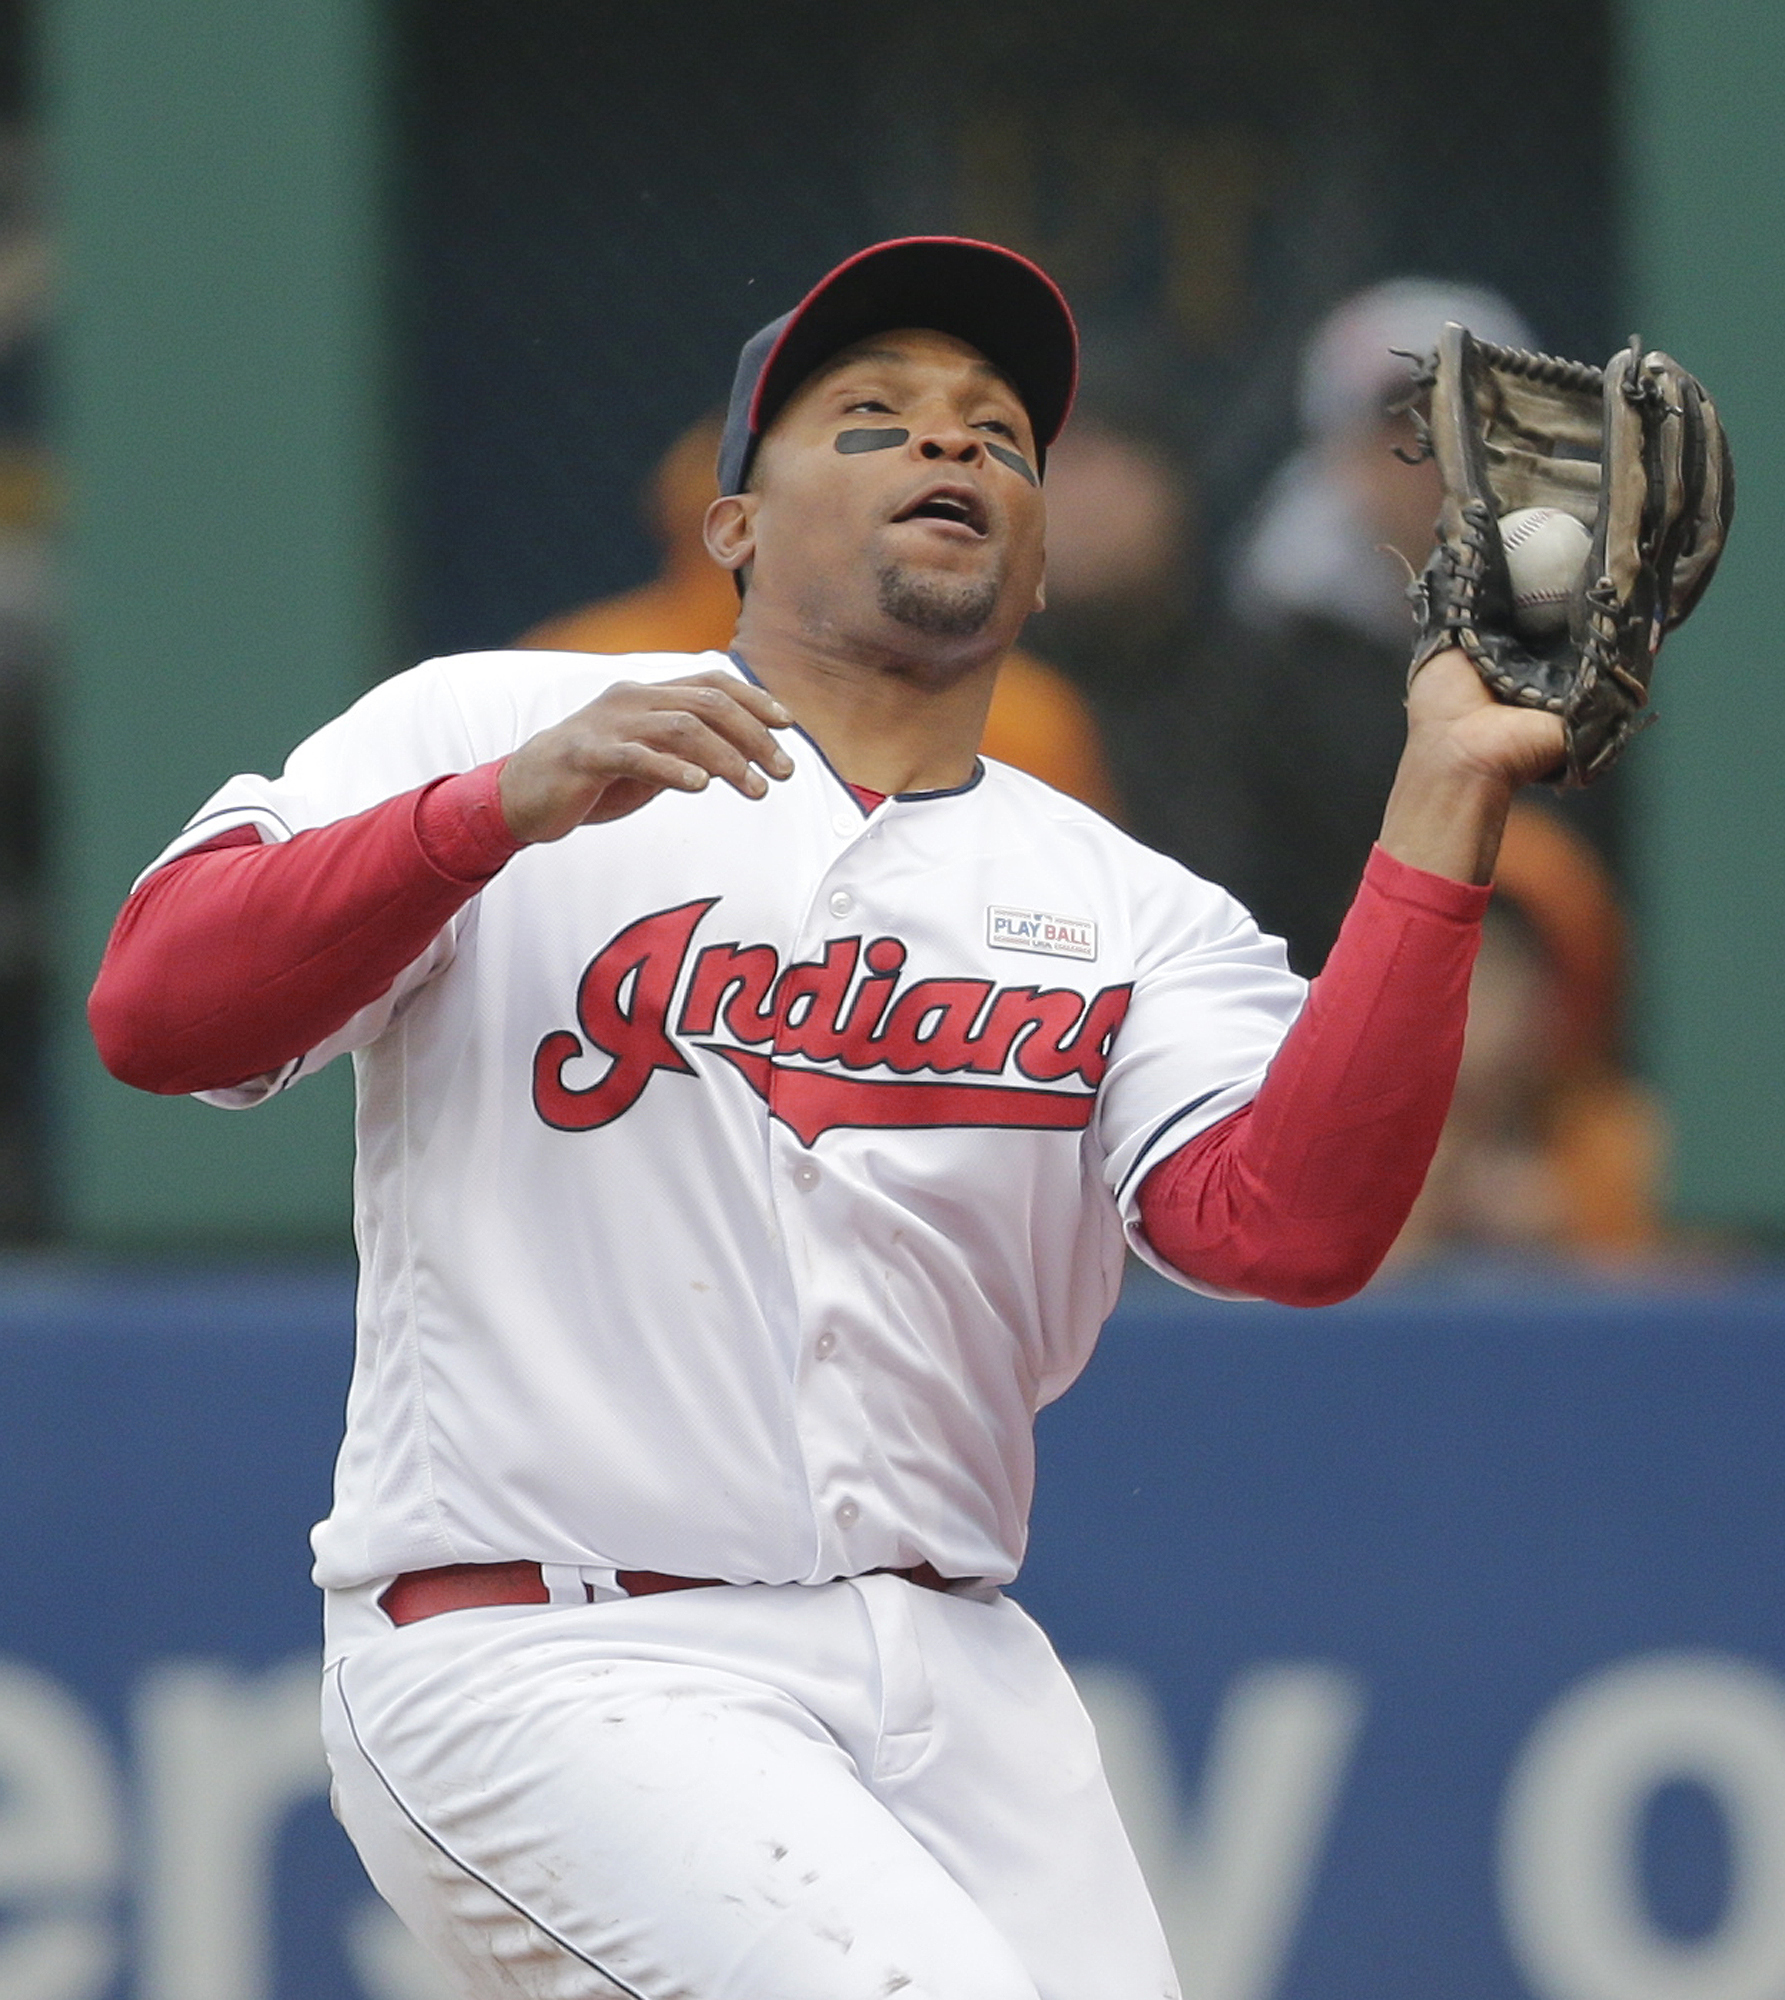 Cleveland Indians' Marlon Byrd catches a foul sacrifice fly hit by Minnesota Twins' Eduardo Nunez in the seventh inning of a baseball game, Saturday, May 14, 2016, in Cleveland. Danny Santana scored on the play. (AP Photo/Tony Dejak)